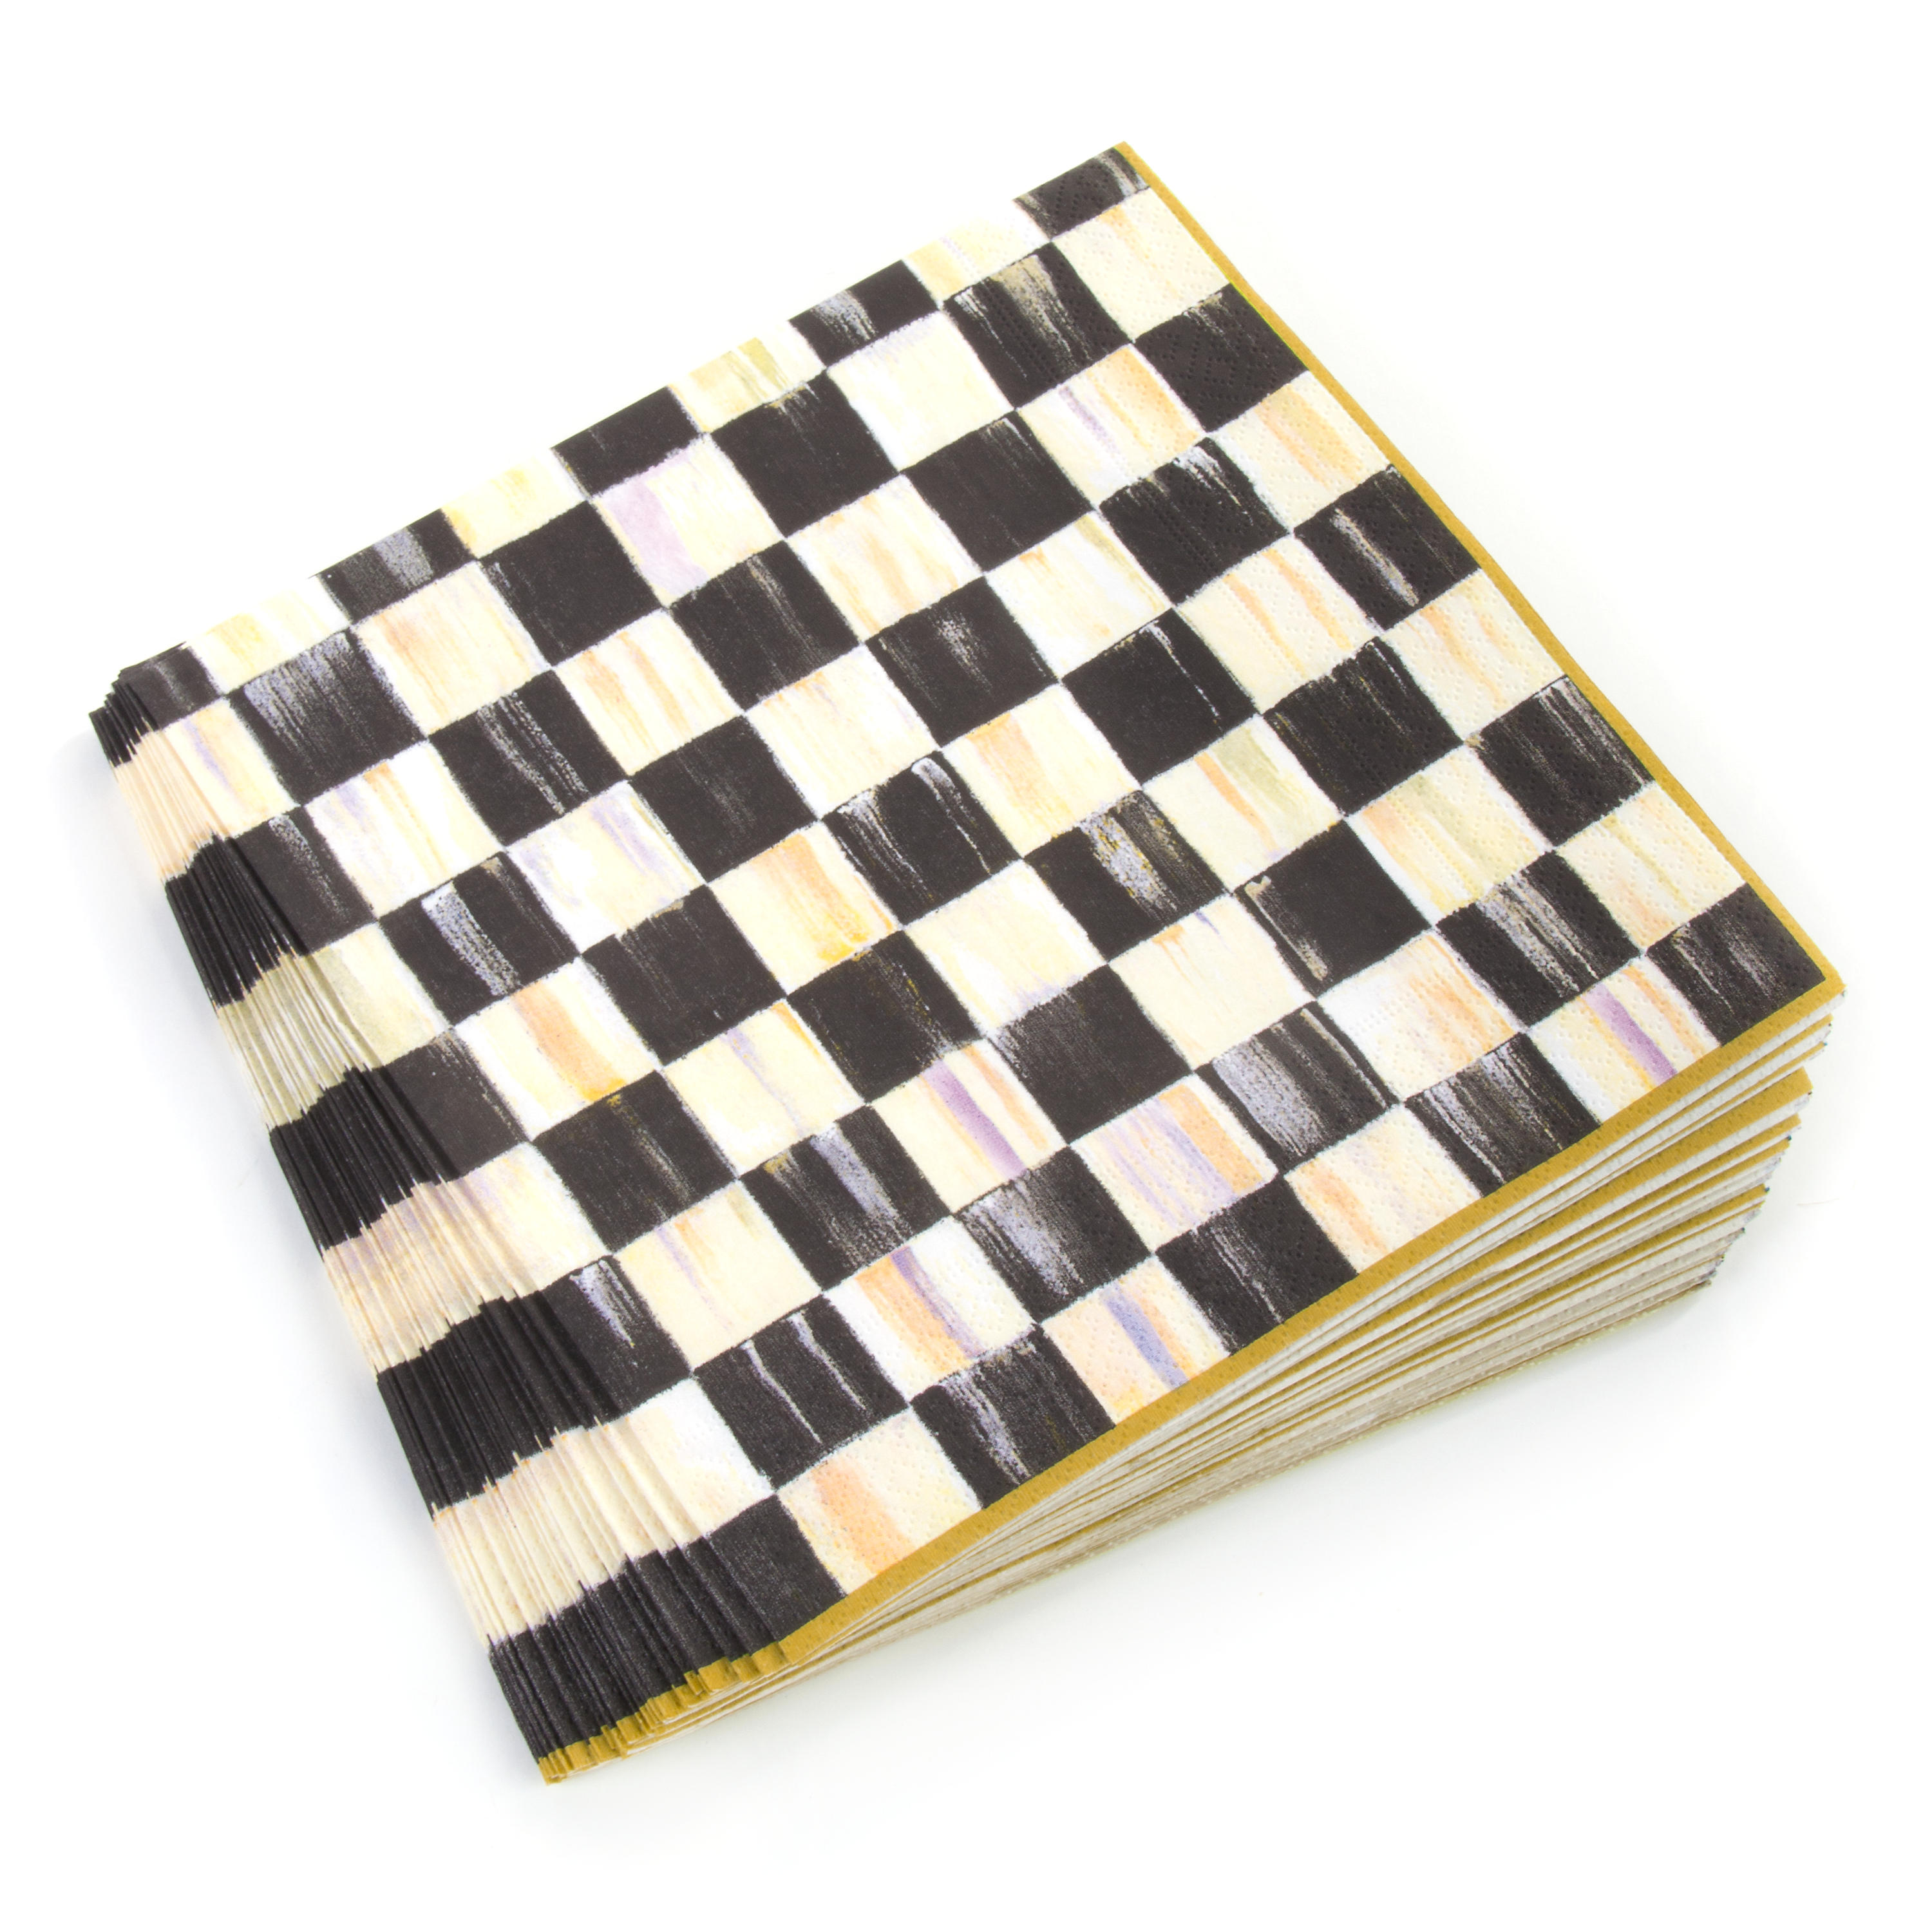 Mackenzie-childs Courtly Check Paper Napkins Luncheon 20 Per Pack Gold Last Style